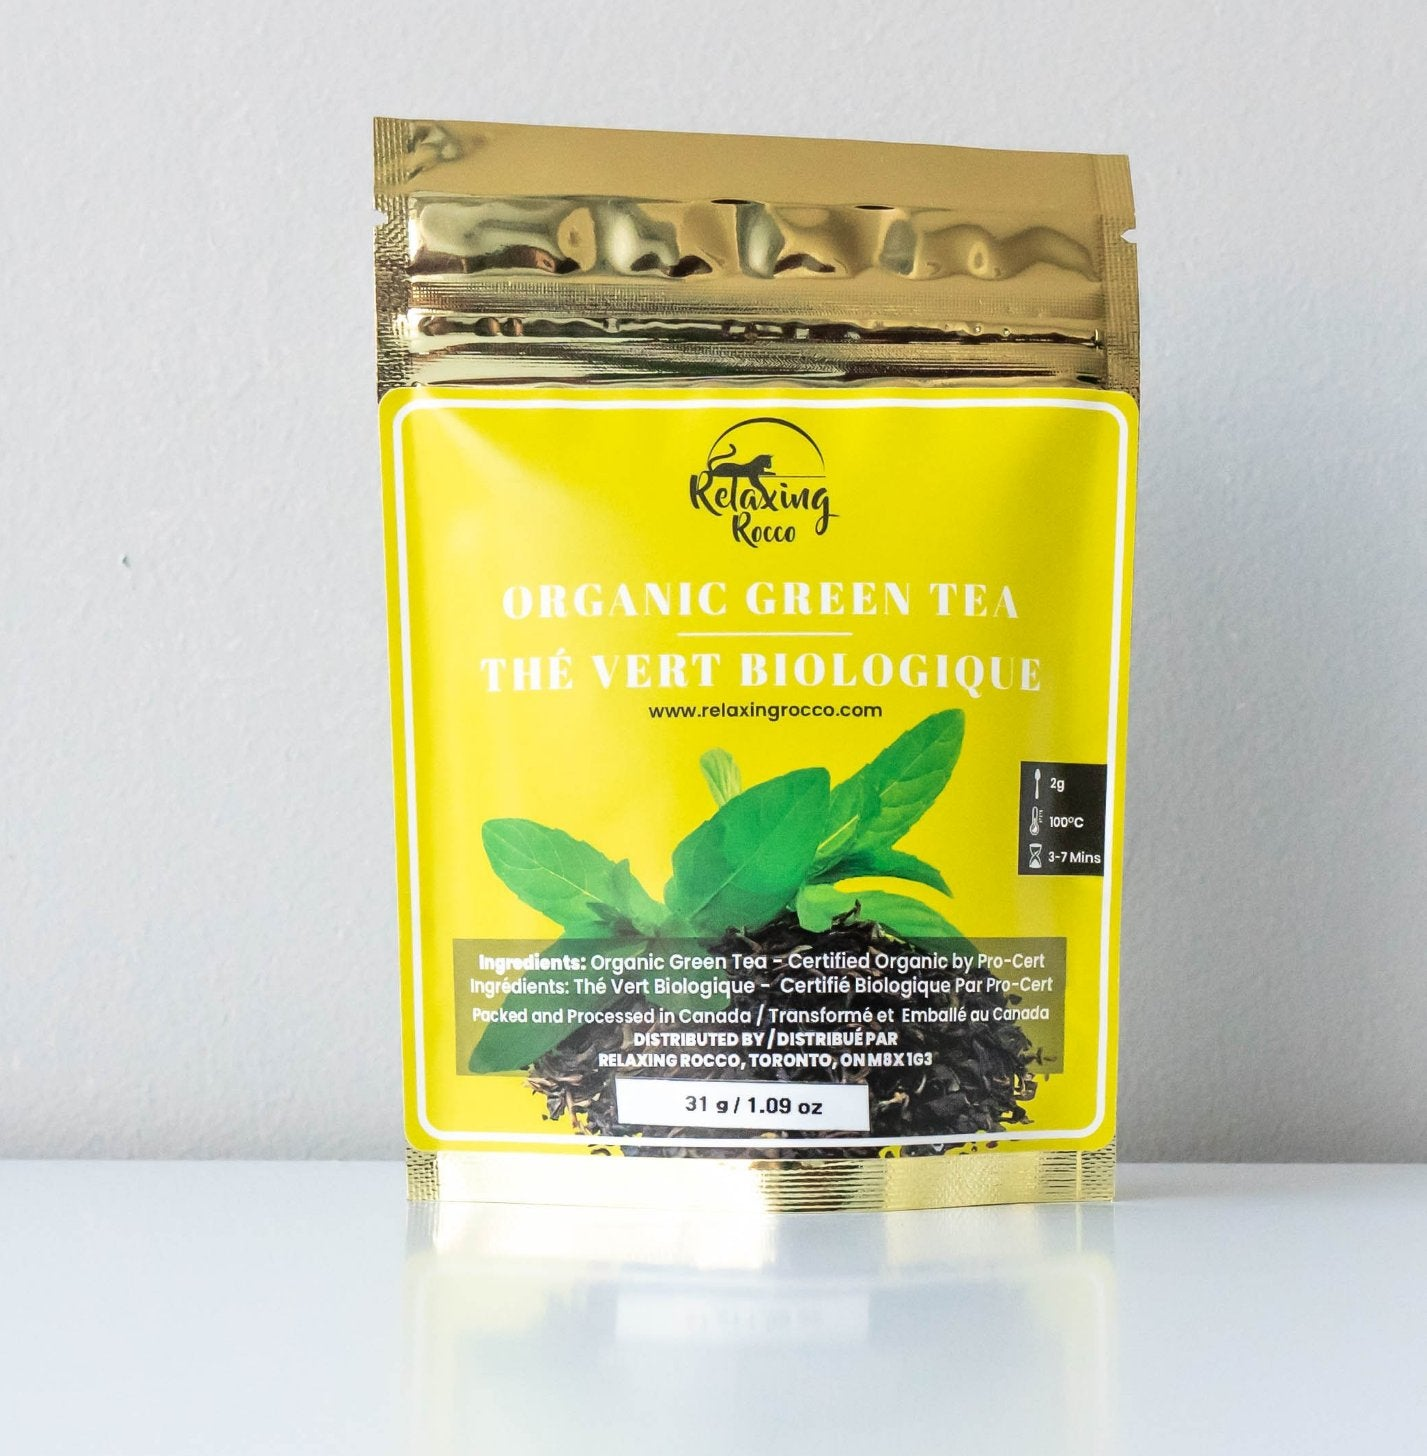 Relaxing Rocco Green Loose Leaf Tea